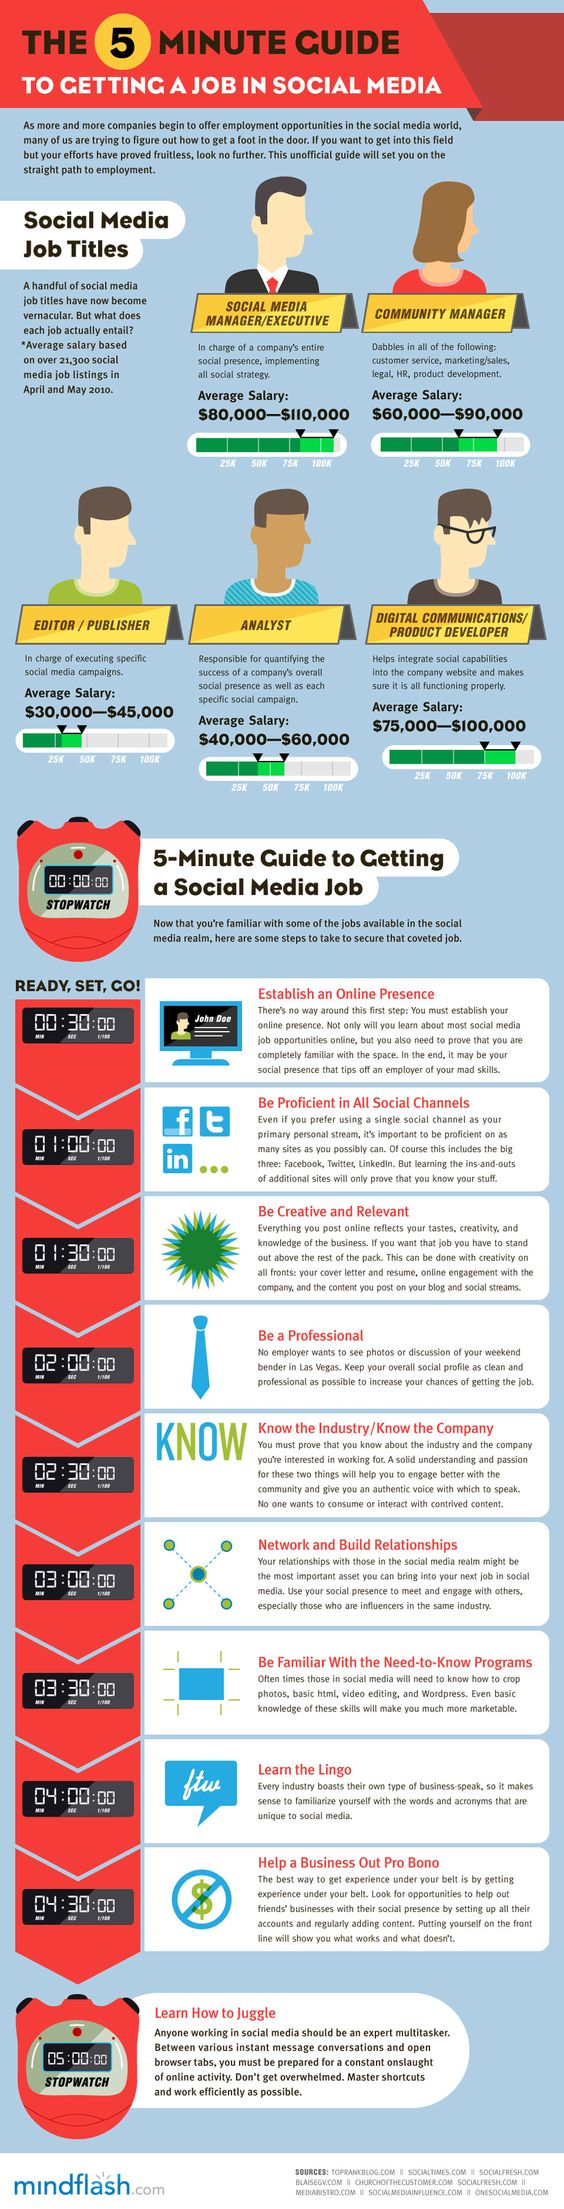 5-Minute Guide to Getting a Job in Social Media [INFOGRAPHIC]